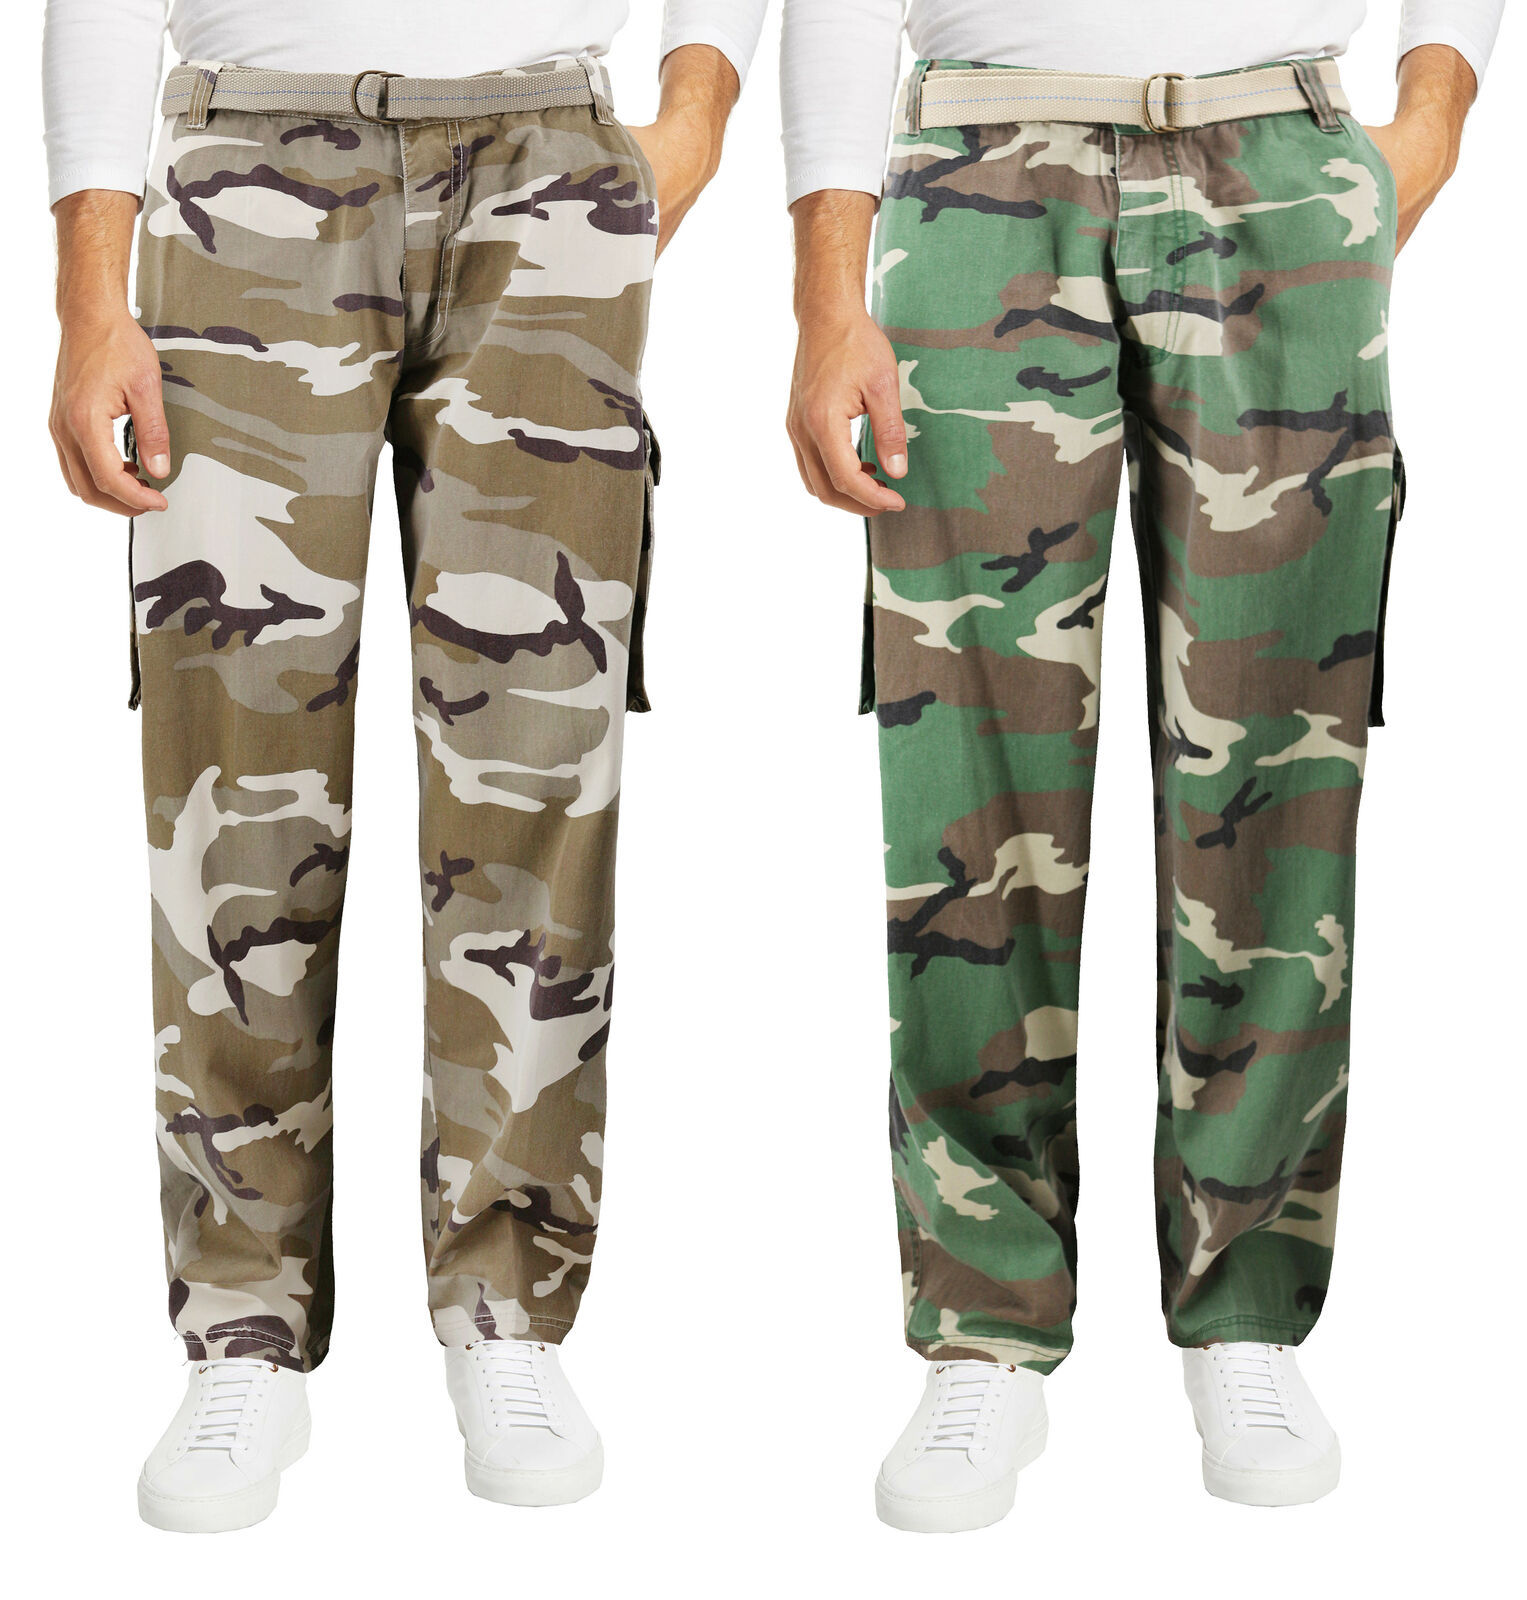 Men's Casual Belted Army Camo Trousers Camouflage Tactical Utility Cargo Pants